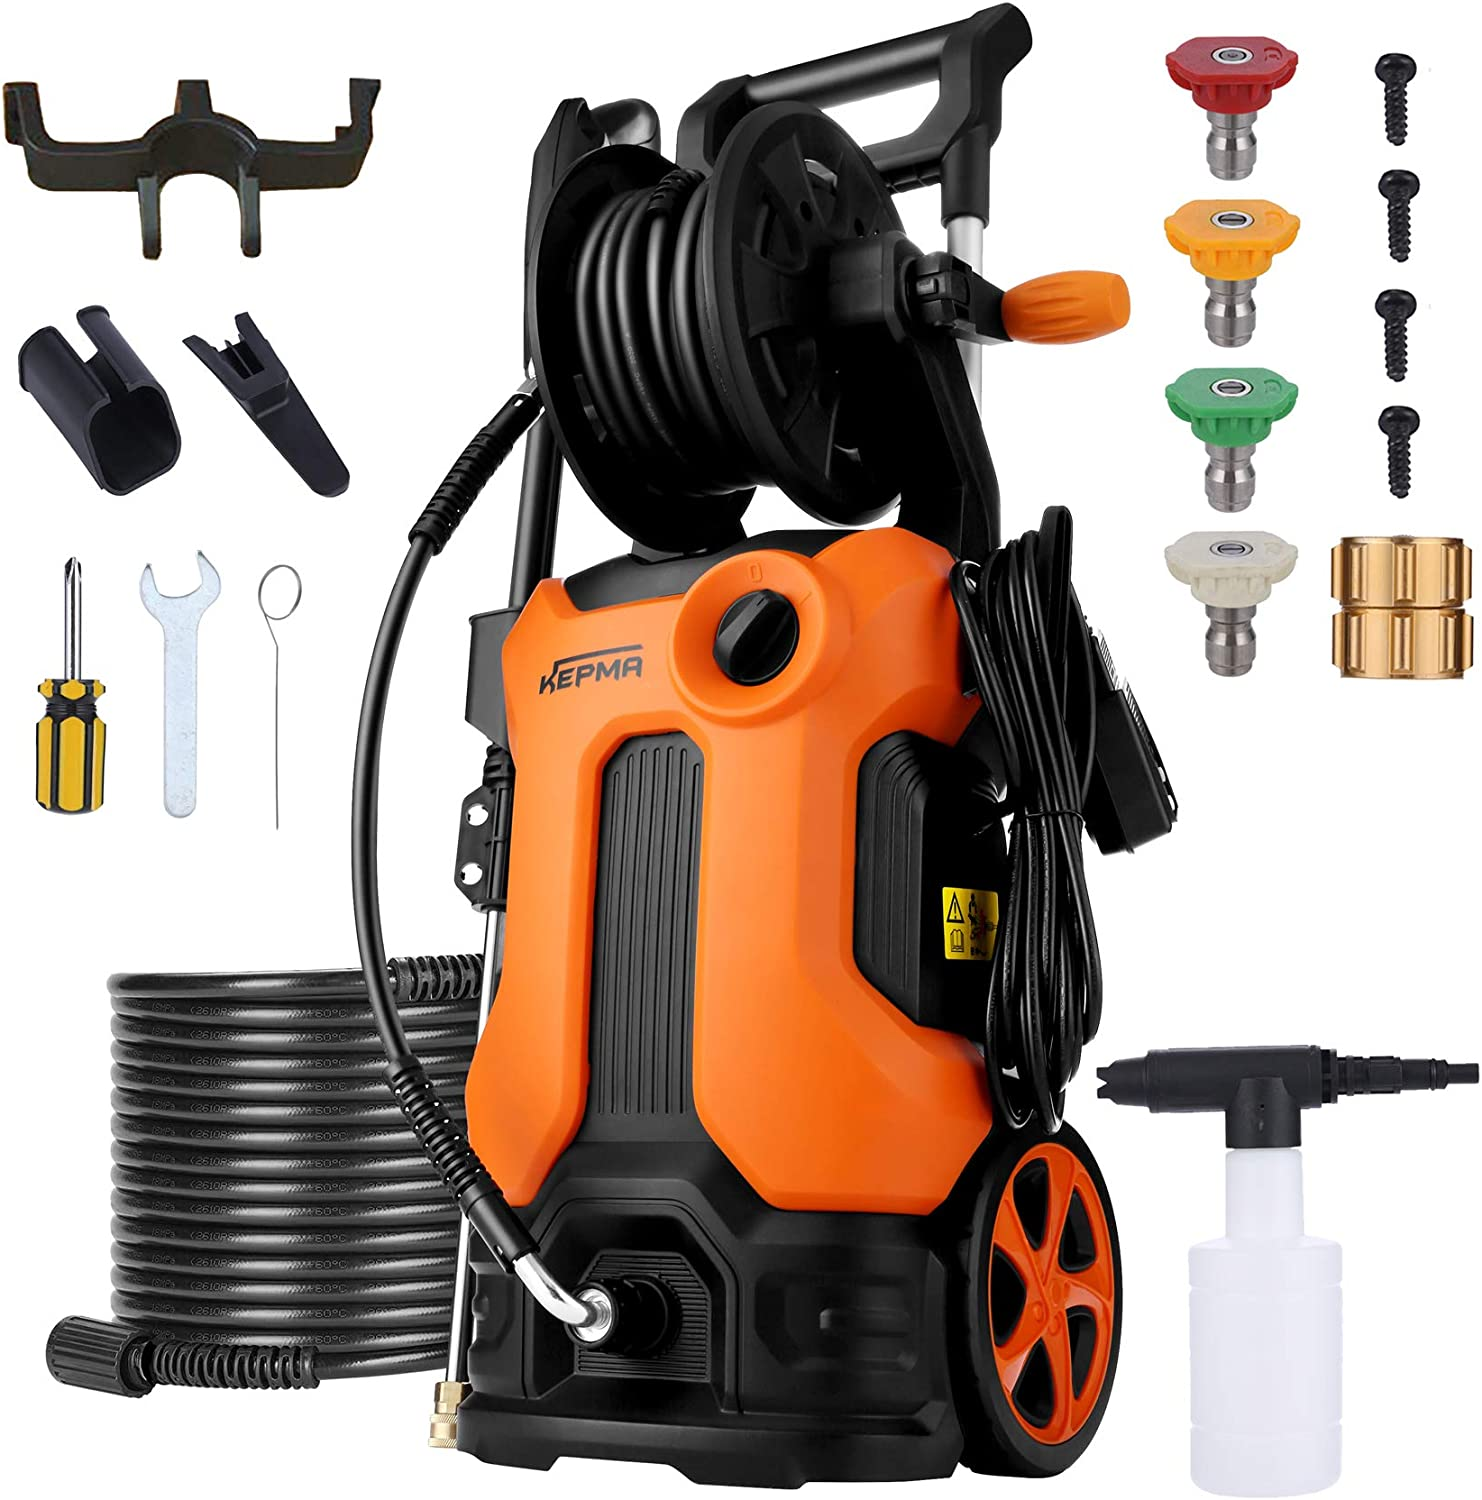 Kepma Electric Pressure Washer 3800 PSI 2.8 GPM Power Washer Deliver Up to 10000+ Cleaning Units, Soap Bottle and 4 Nozzles Delivers Different Pressure for Homes Cars Driveways Patios